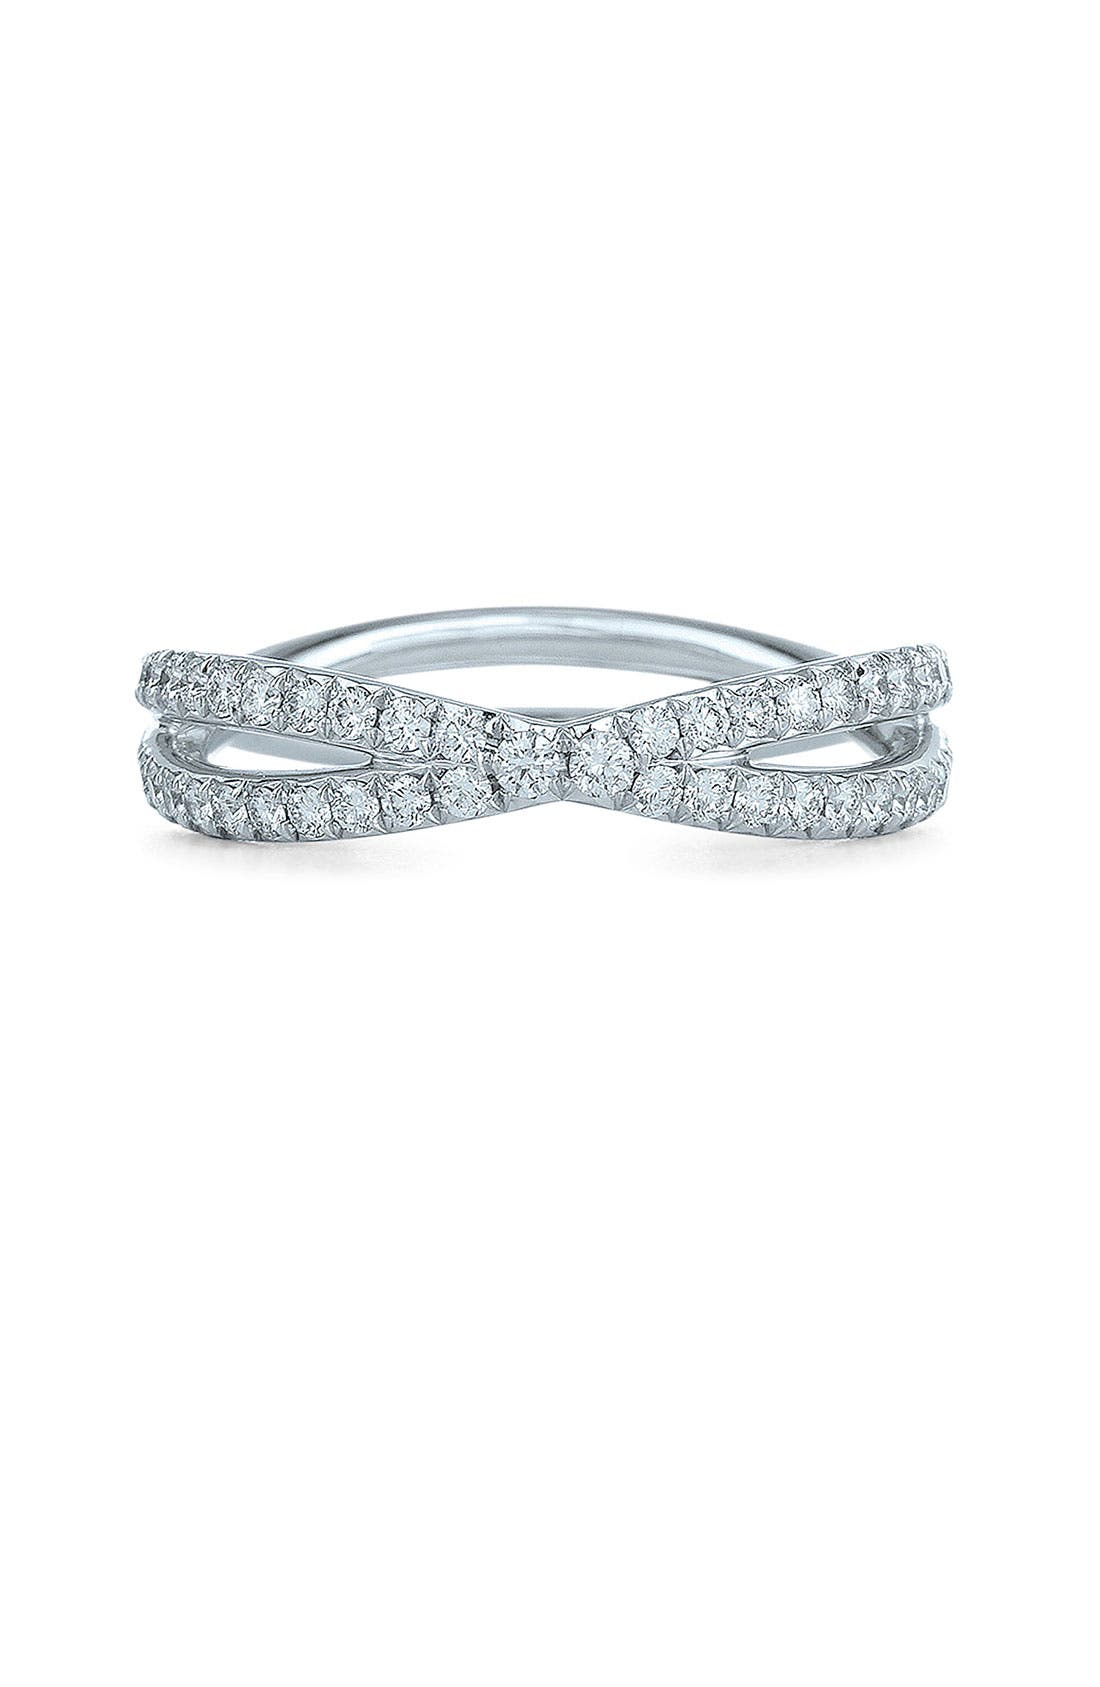 Main Image - Kwiat 'Fidelity' Diamond Crossover Ring